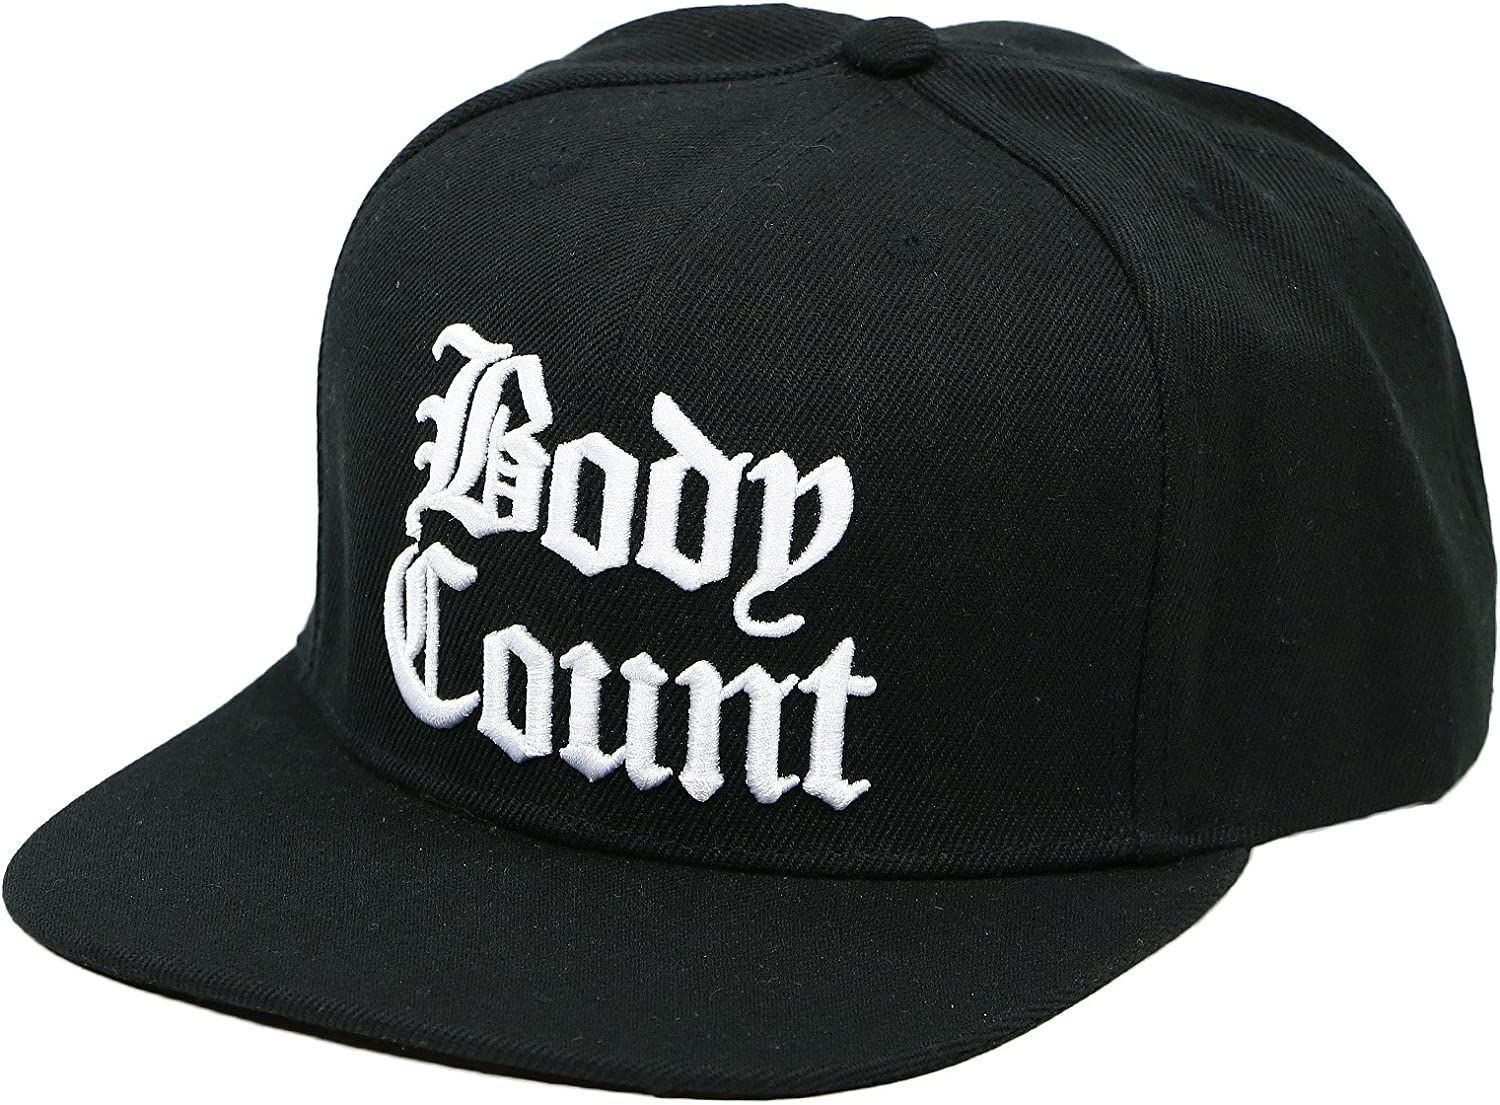 Body Count baseball cap